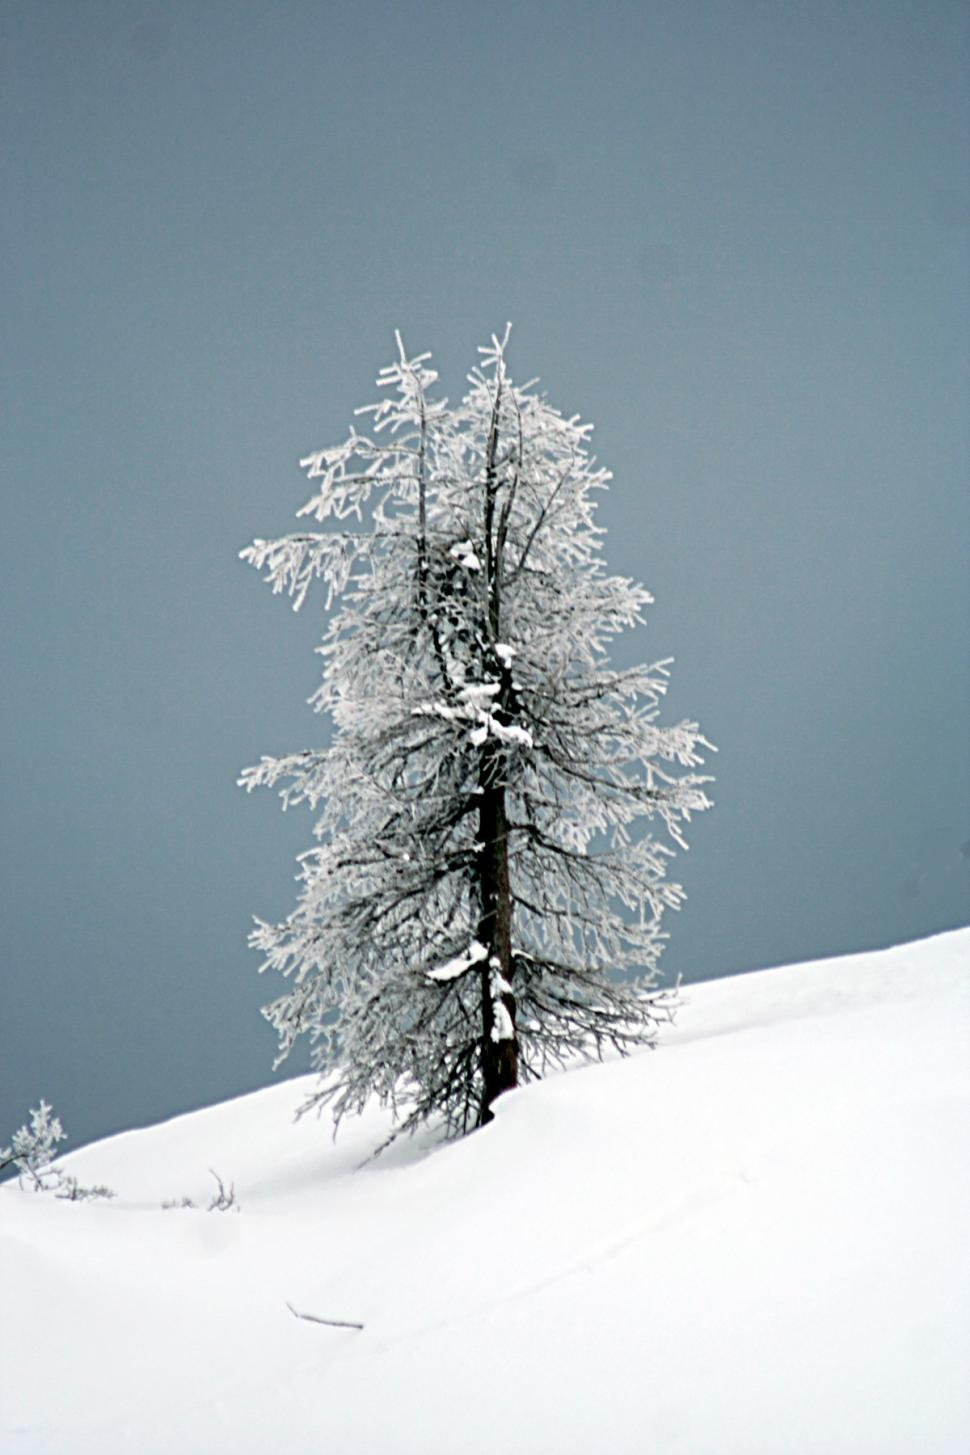 Download Free Stock Photo of The tree